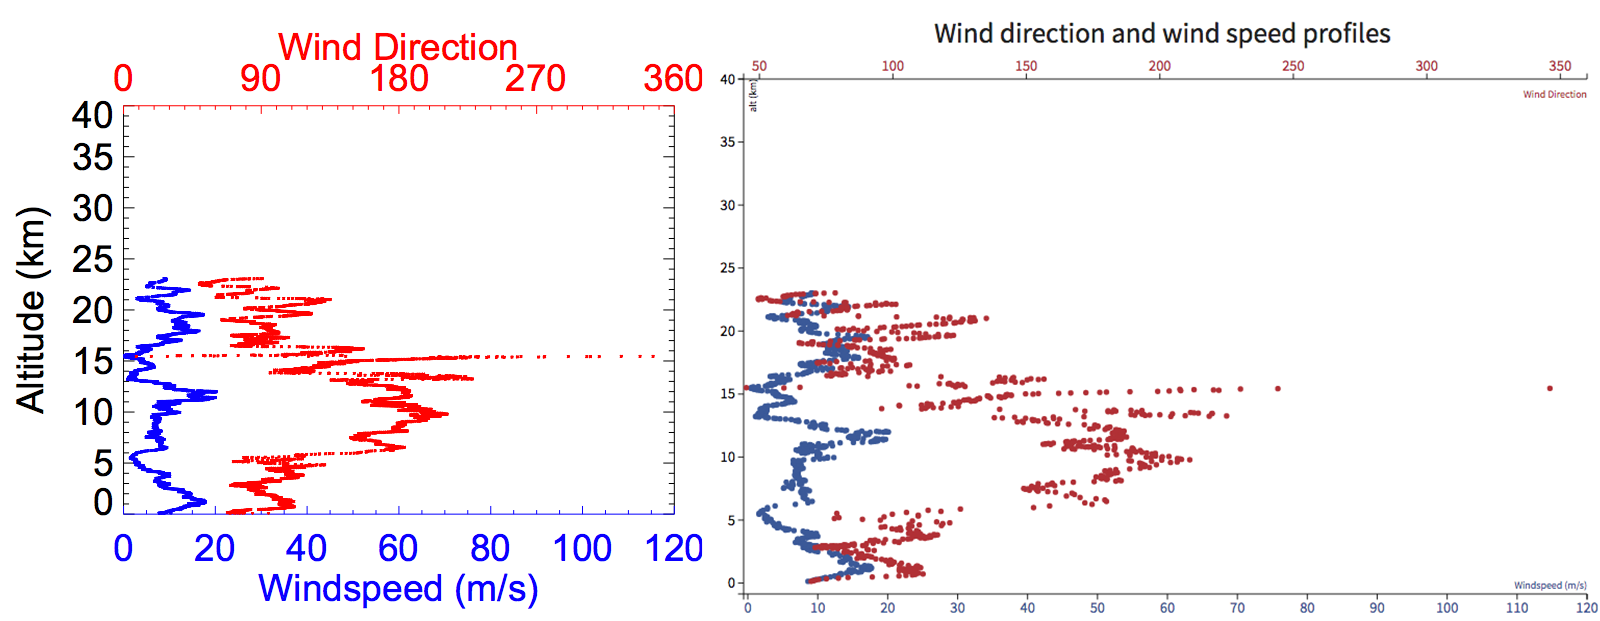 Figure 4: Left: Pdf of Wind direction data created by custom software Right: The same data dynamically generated by D3 in the browser.